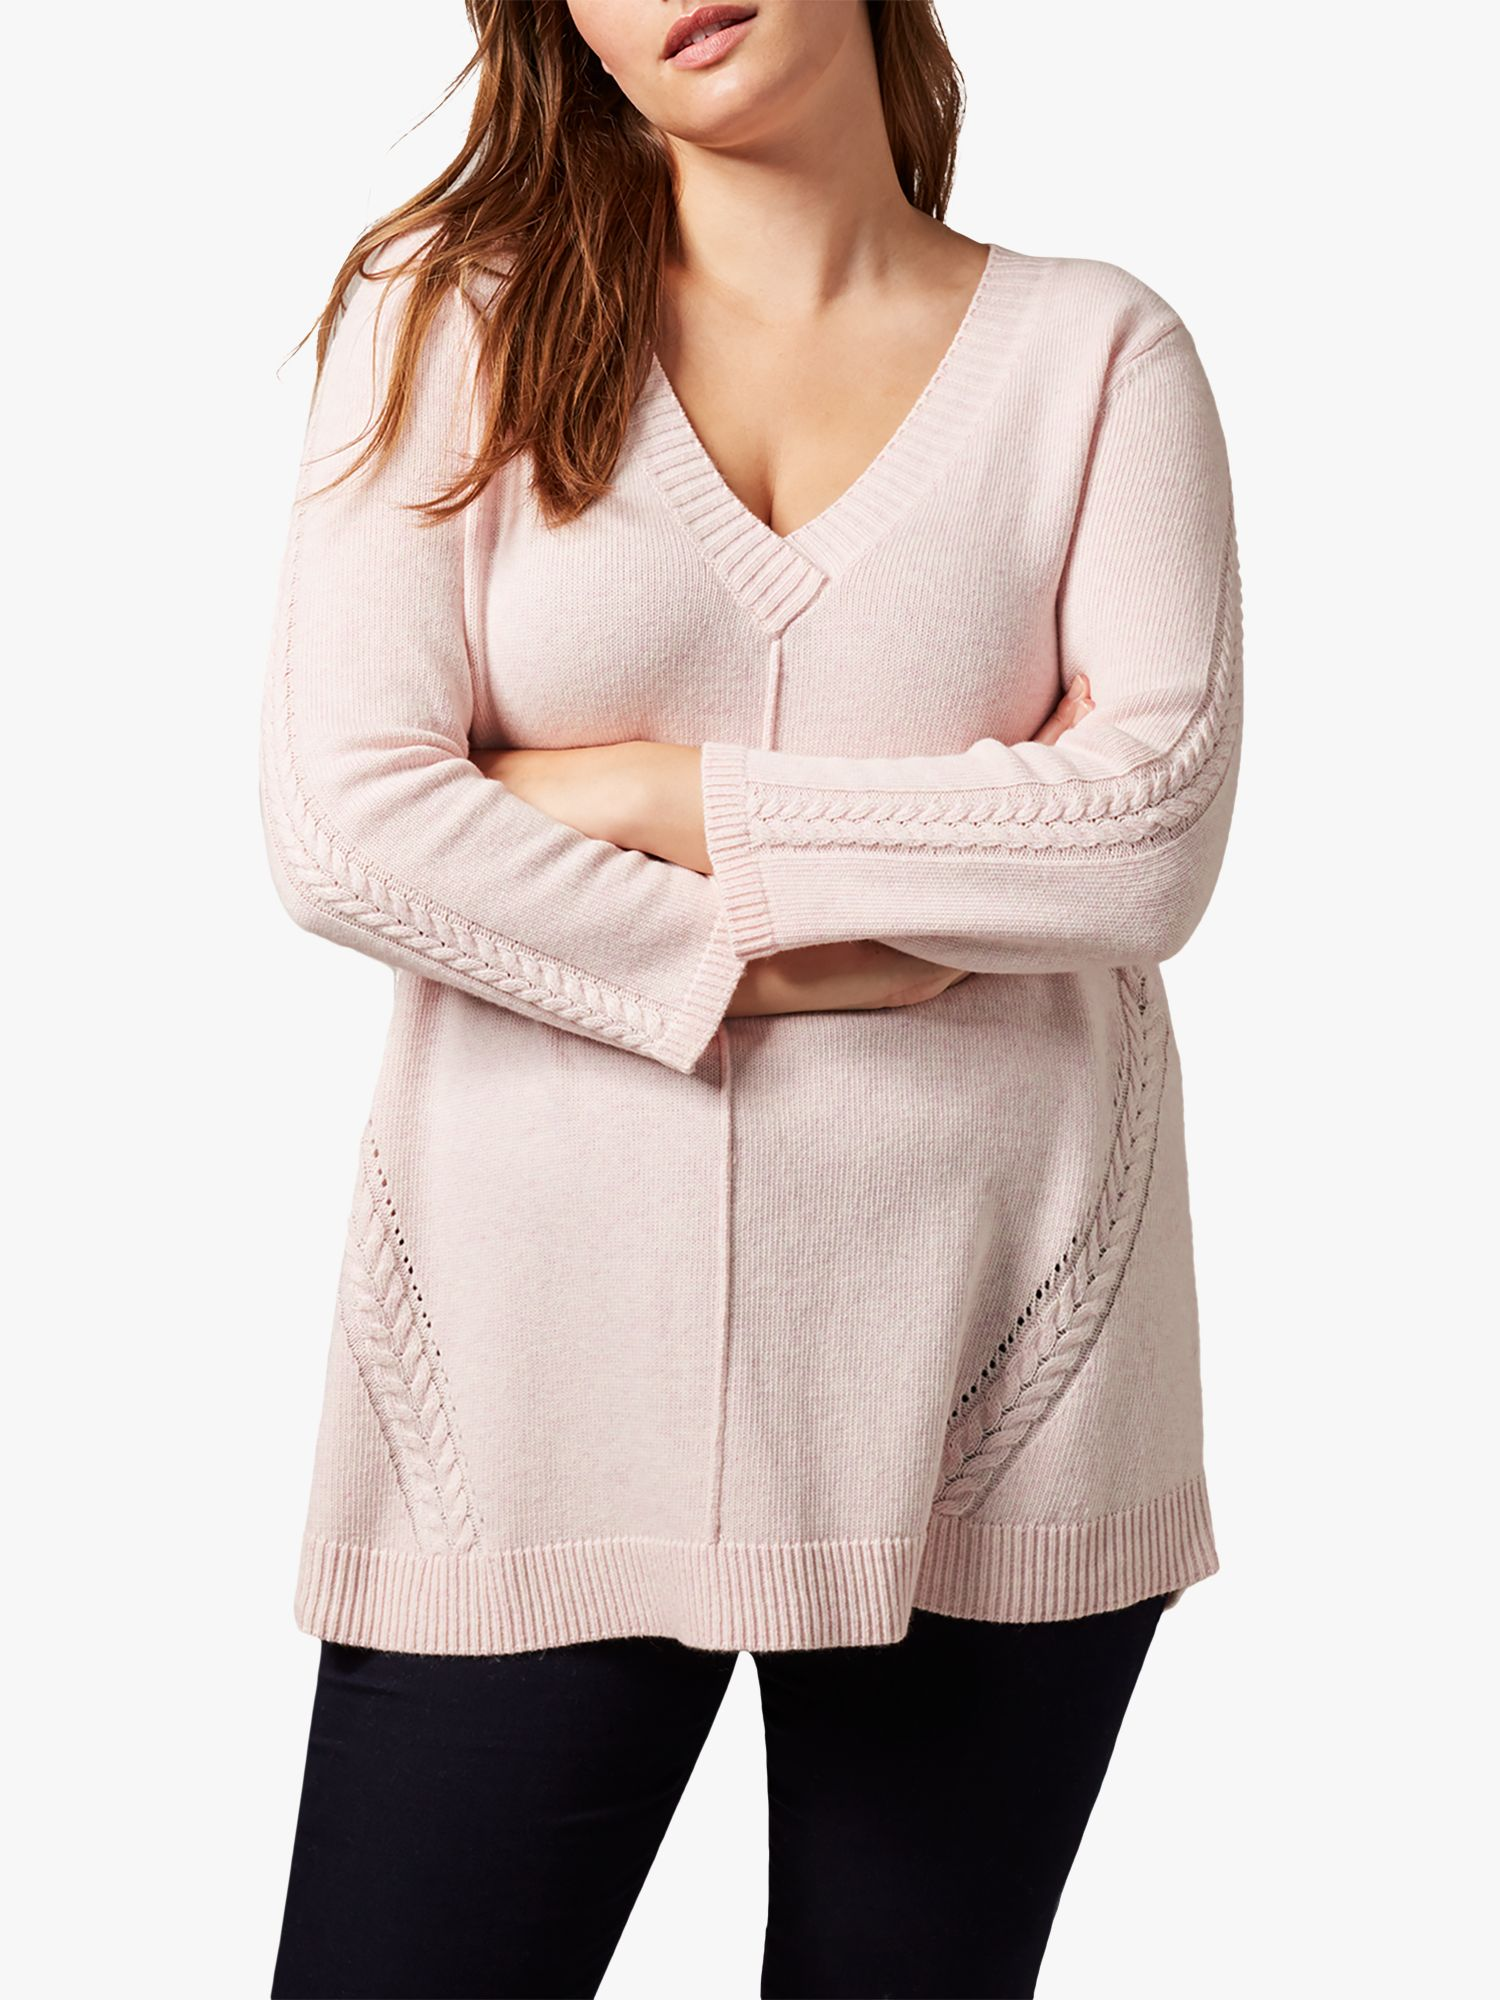 Studio 8 Studio 8 Nixie Cable Jumper, Pale Pink